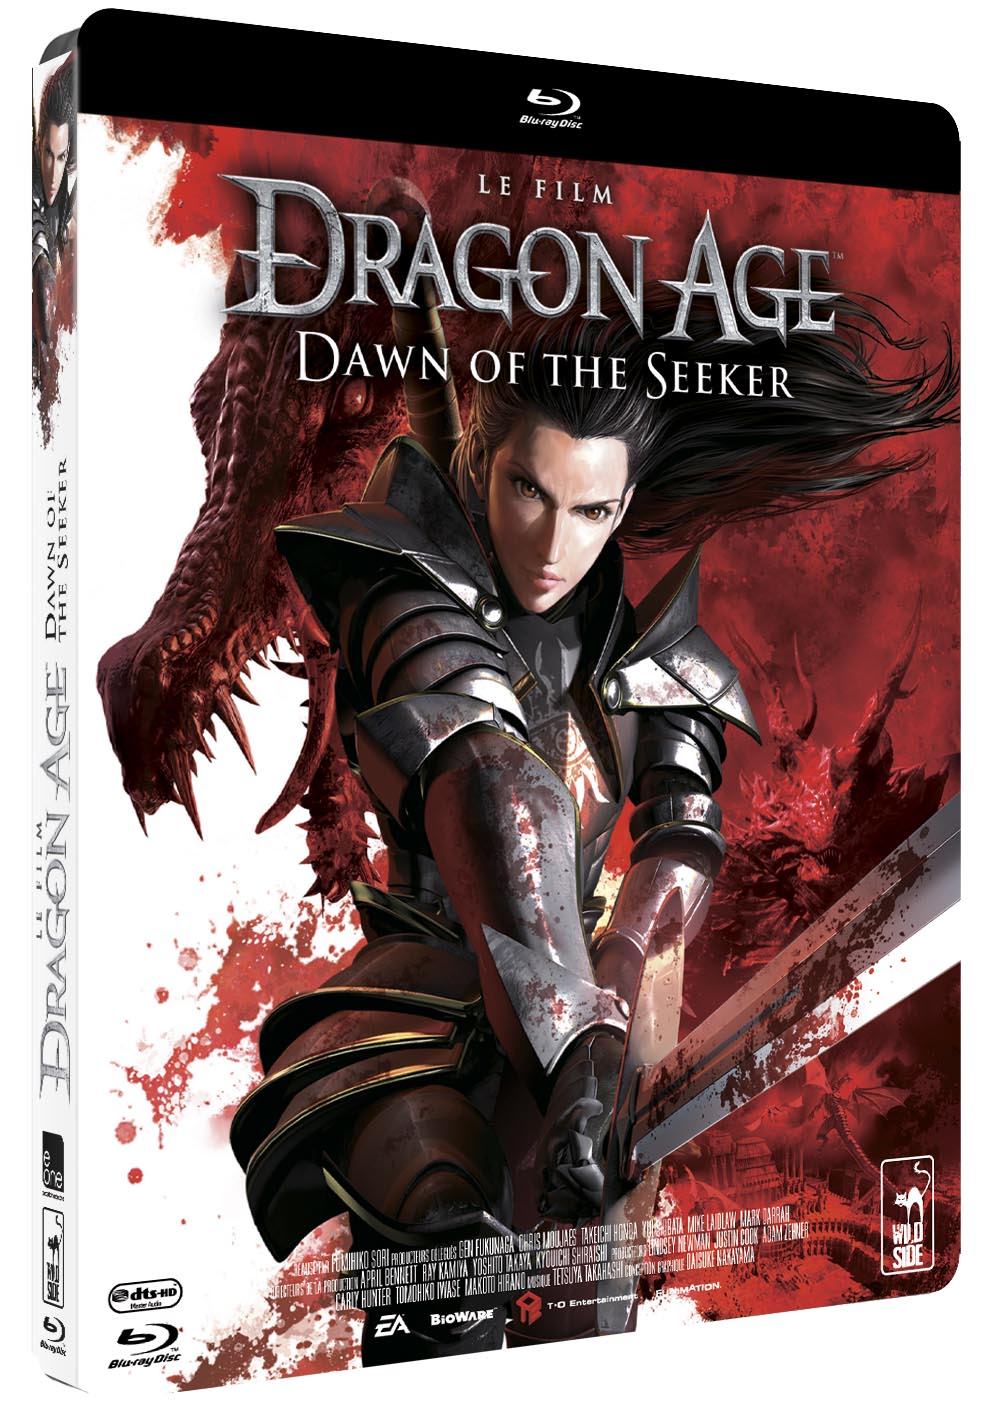 DRAGON AGE-Blu-ray